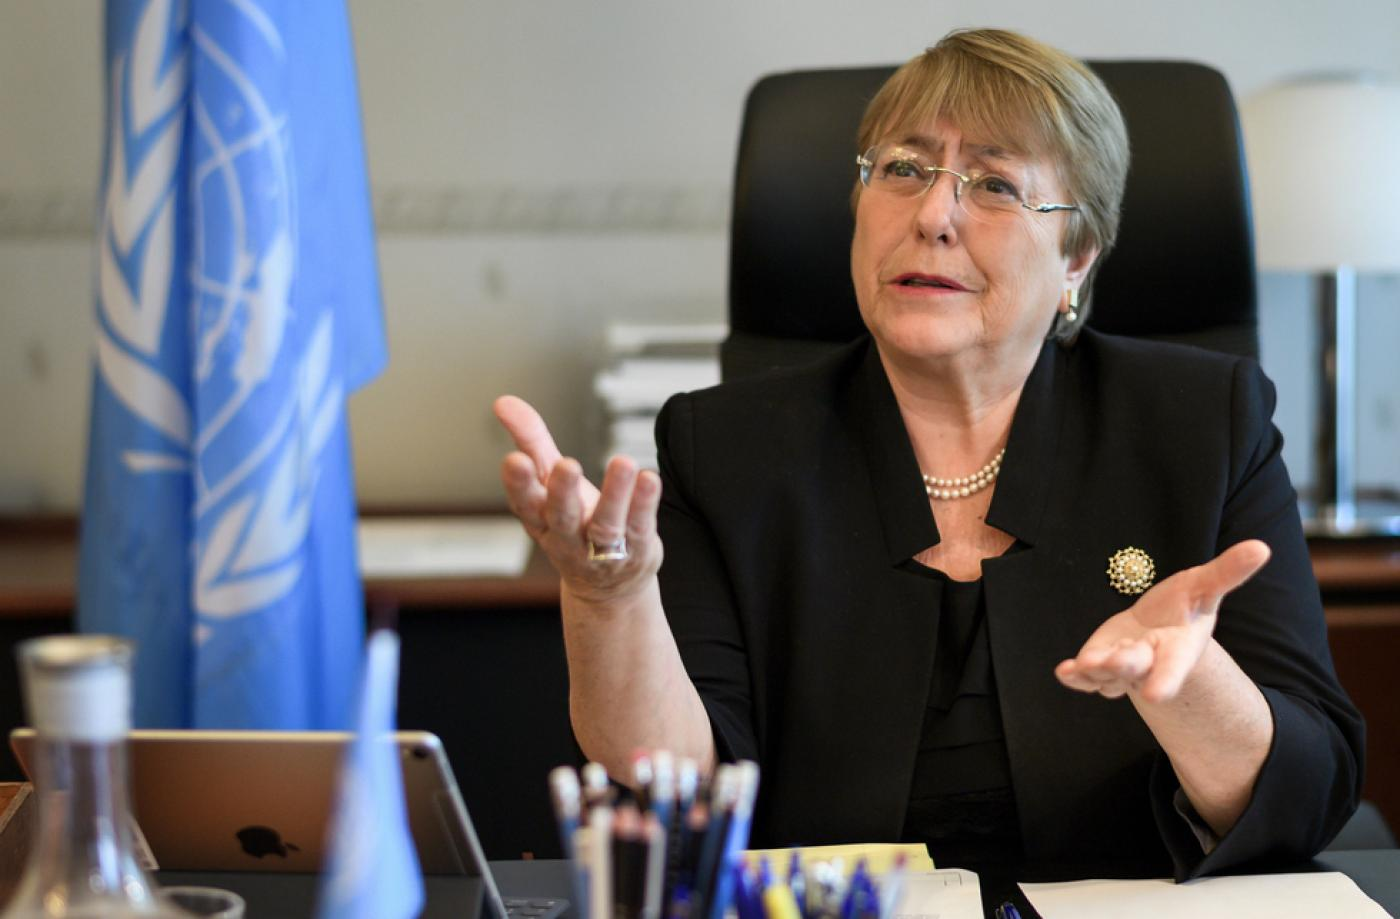 UN rights chief condemns 'international indifference' over Syria bloodshed